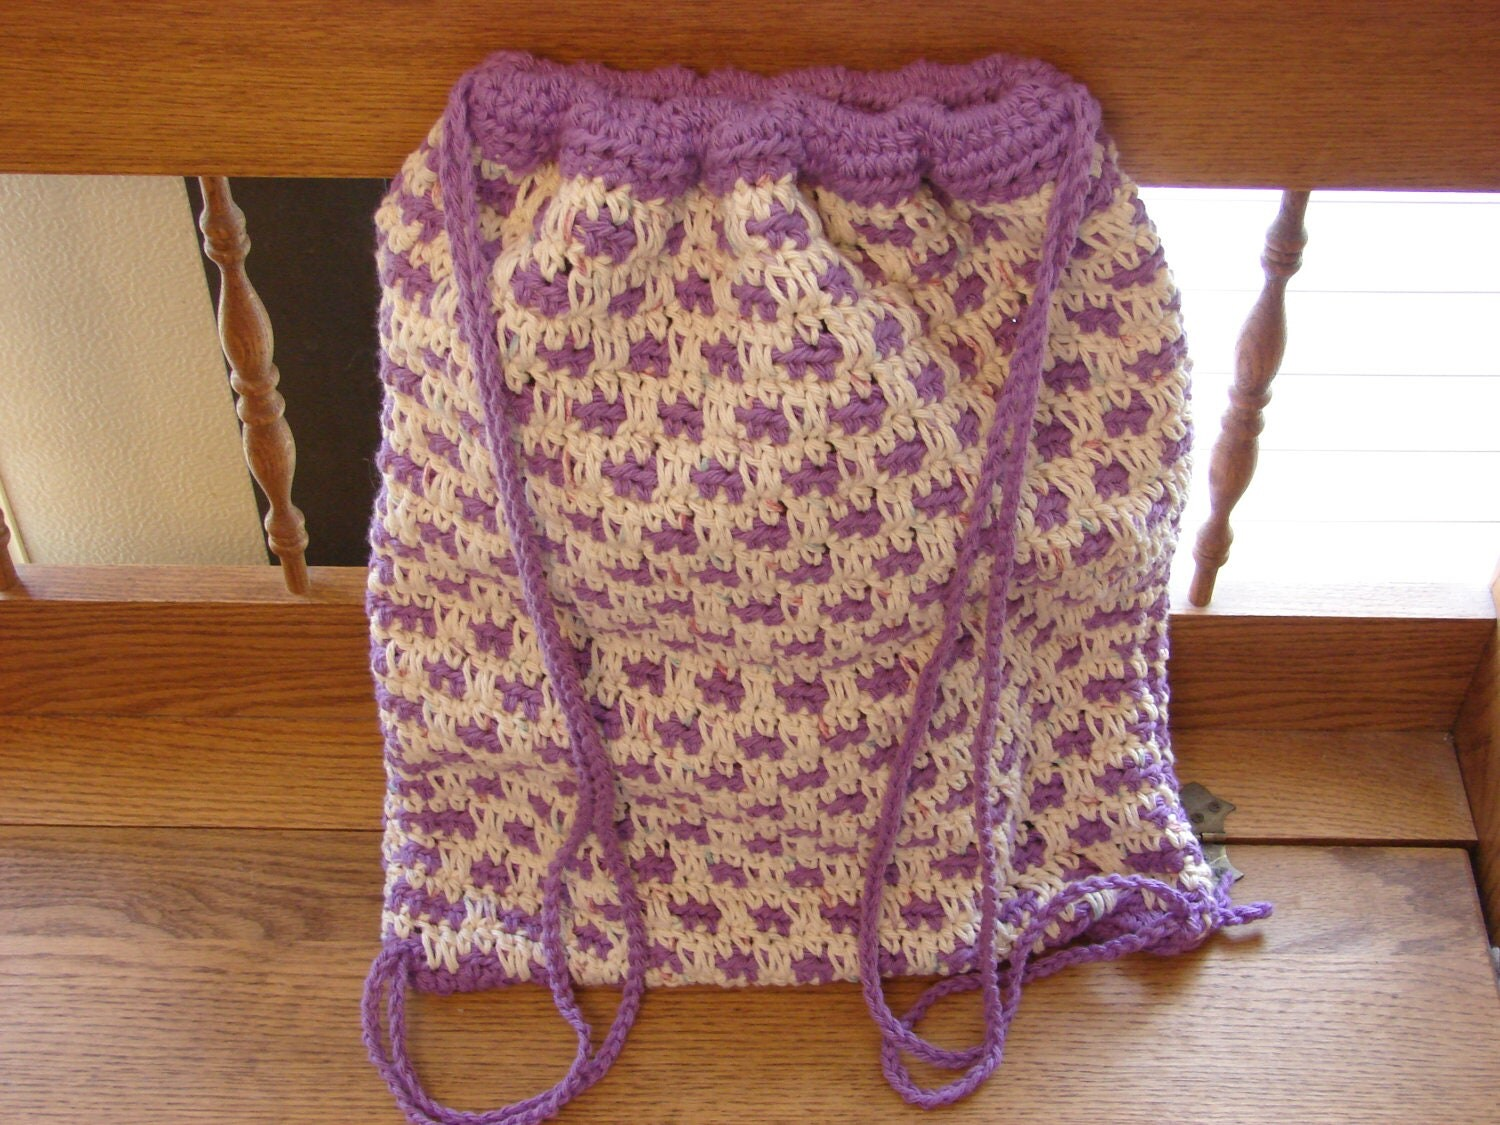 Crochet Drawstring Bag : Crochet Cotton Pastel Color Drawstring Bag or Backpack